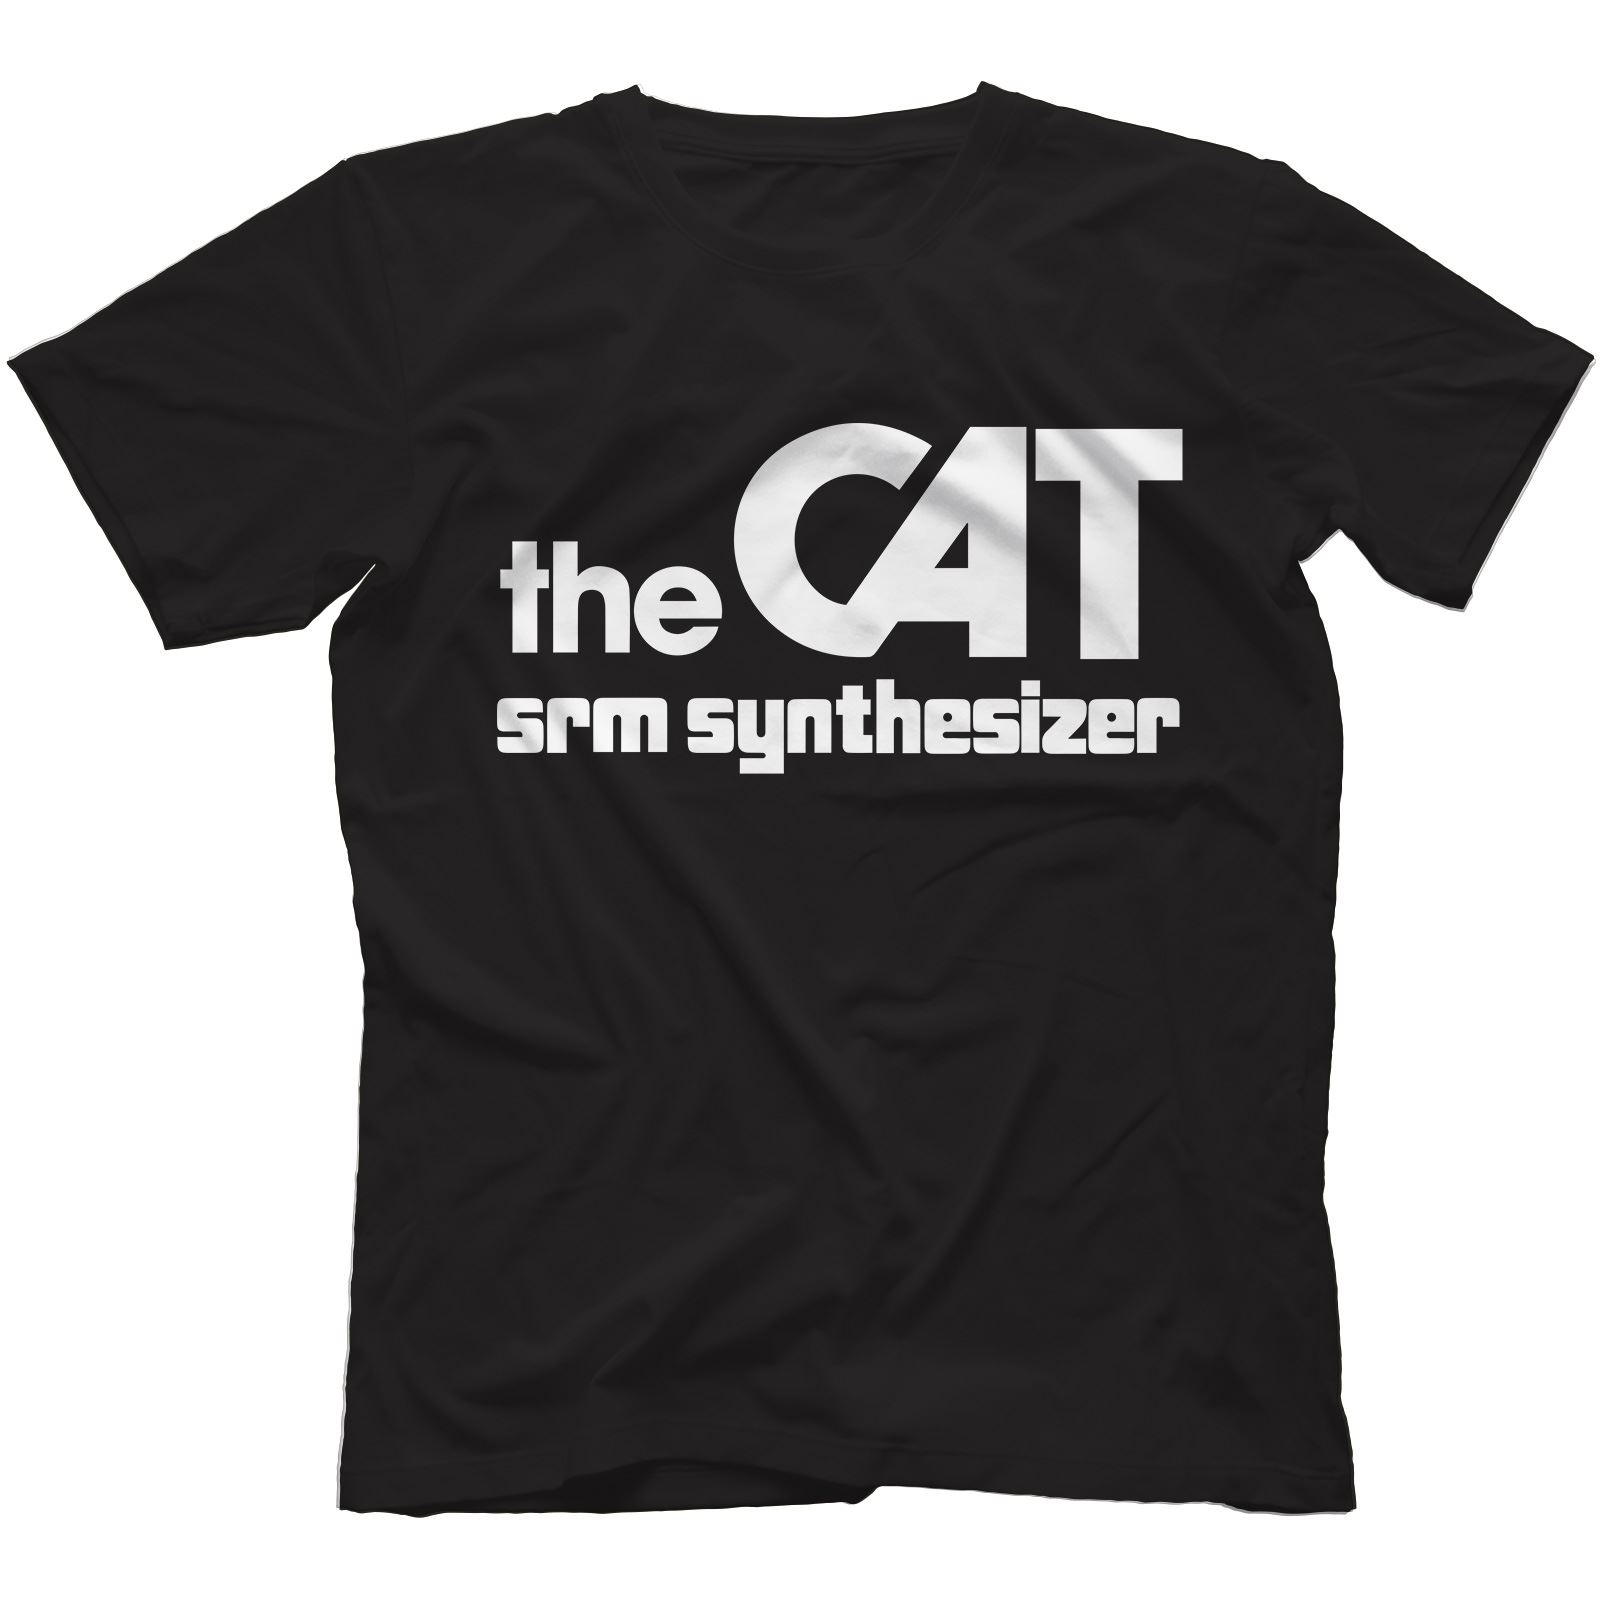 The-Cat-SRM-Synthesiser-T-Shirt-100-Cotton-Retro-Analog-Arp-Odyssey Indexbild 8